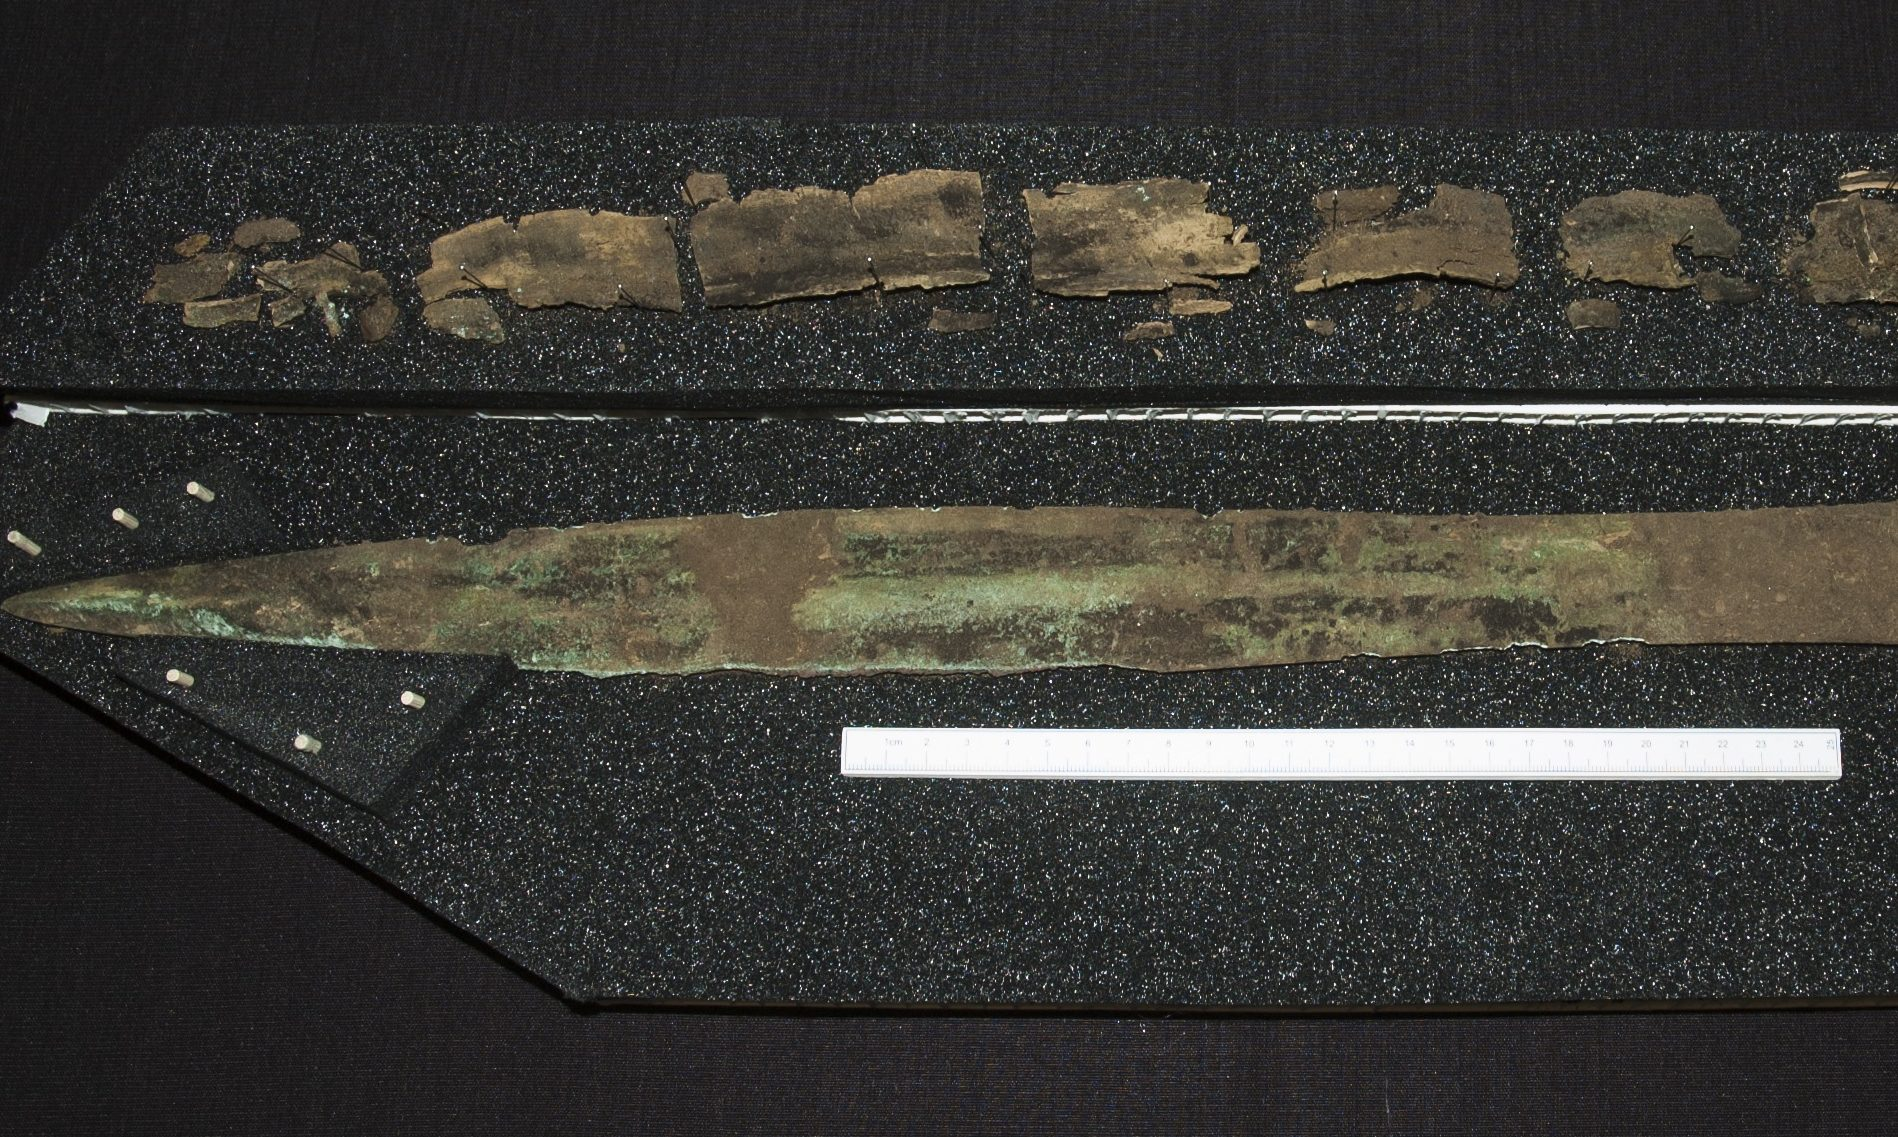 The Bronze Age sword discovered at Carnoustie.